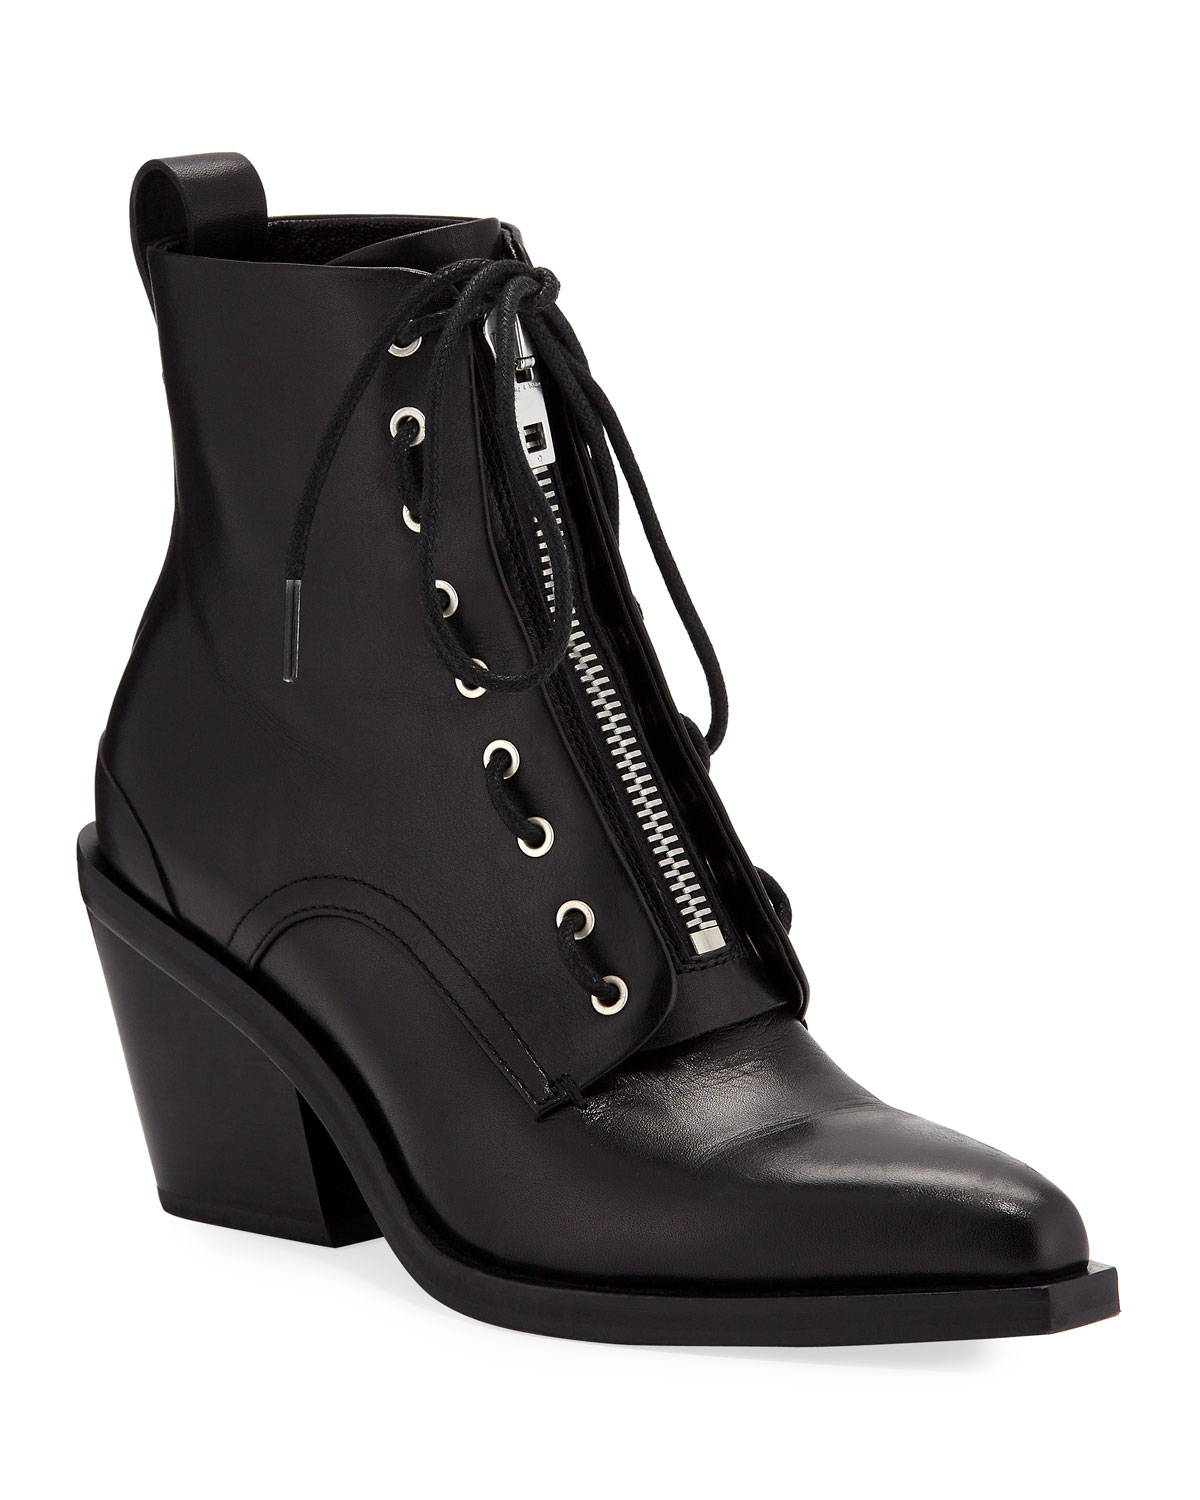 Ryder Lace-Up Boots